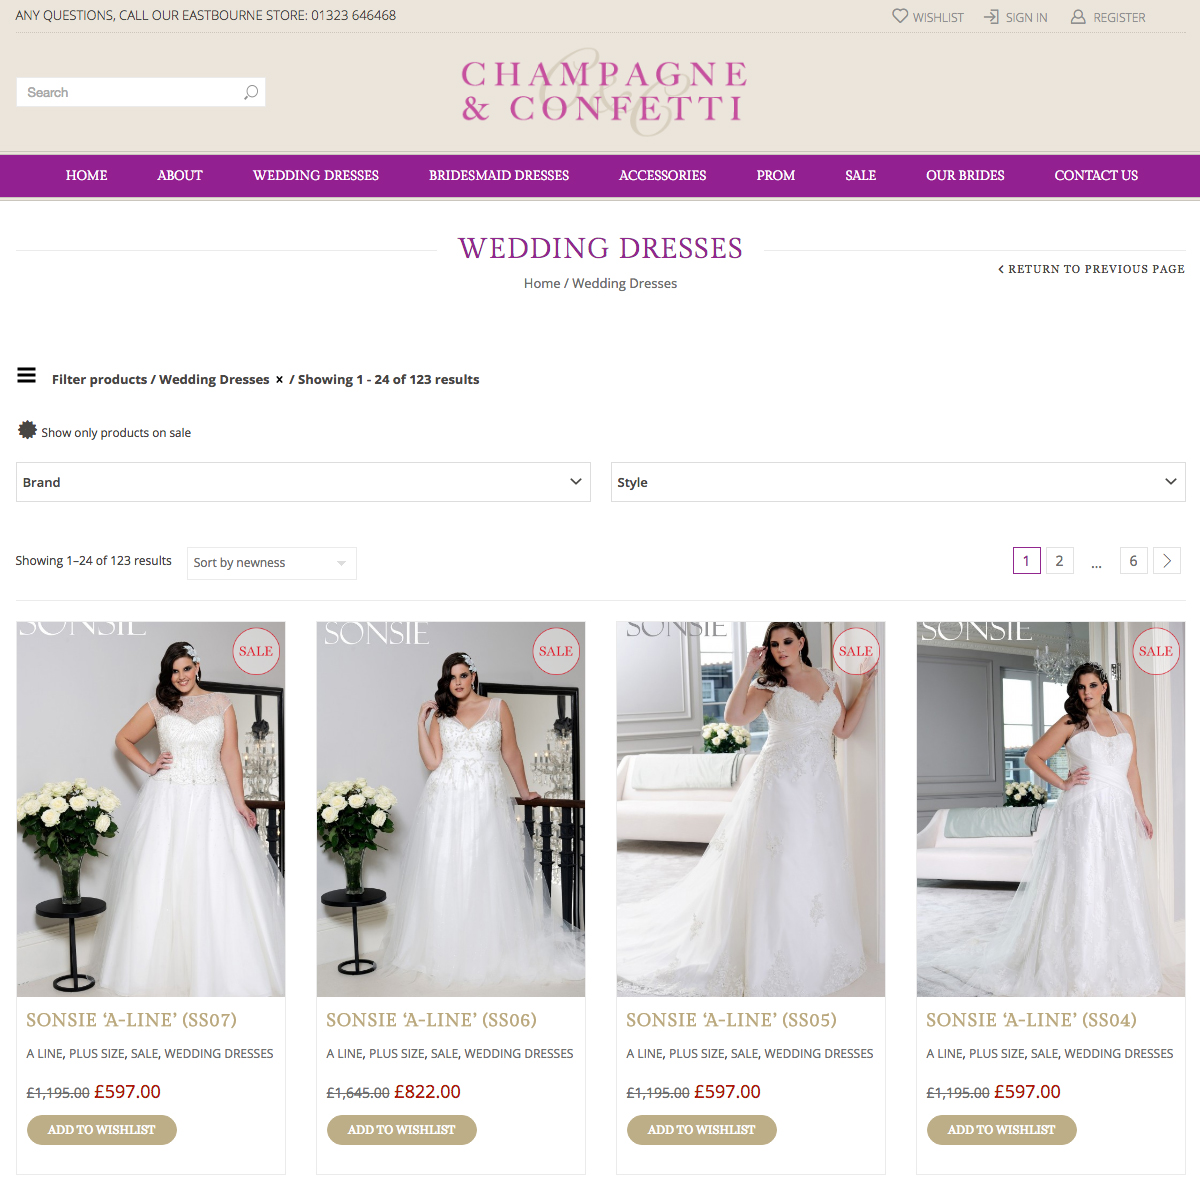 champagne-and-confetti-website-2